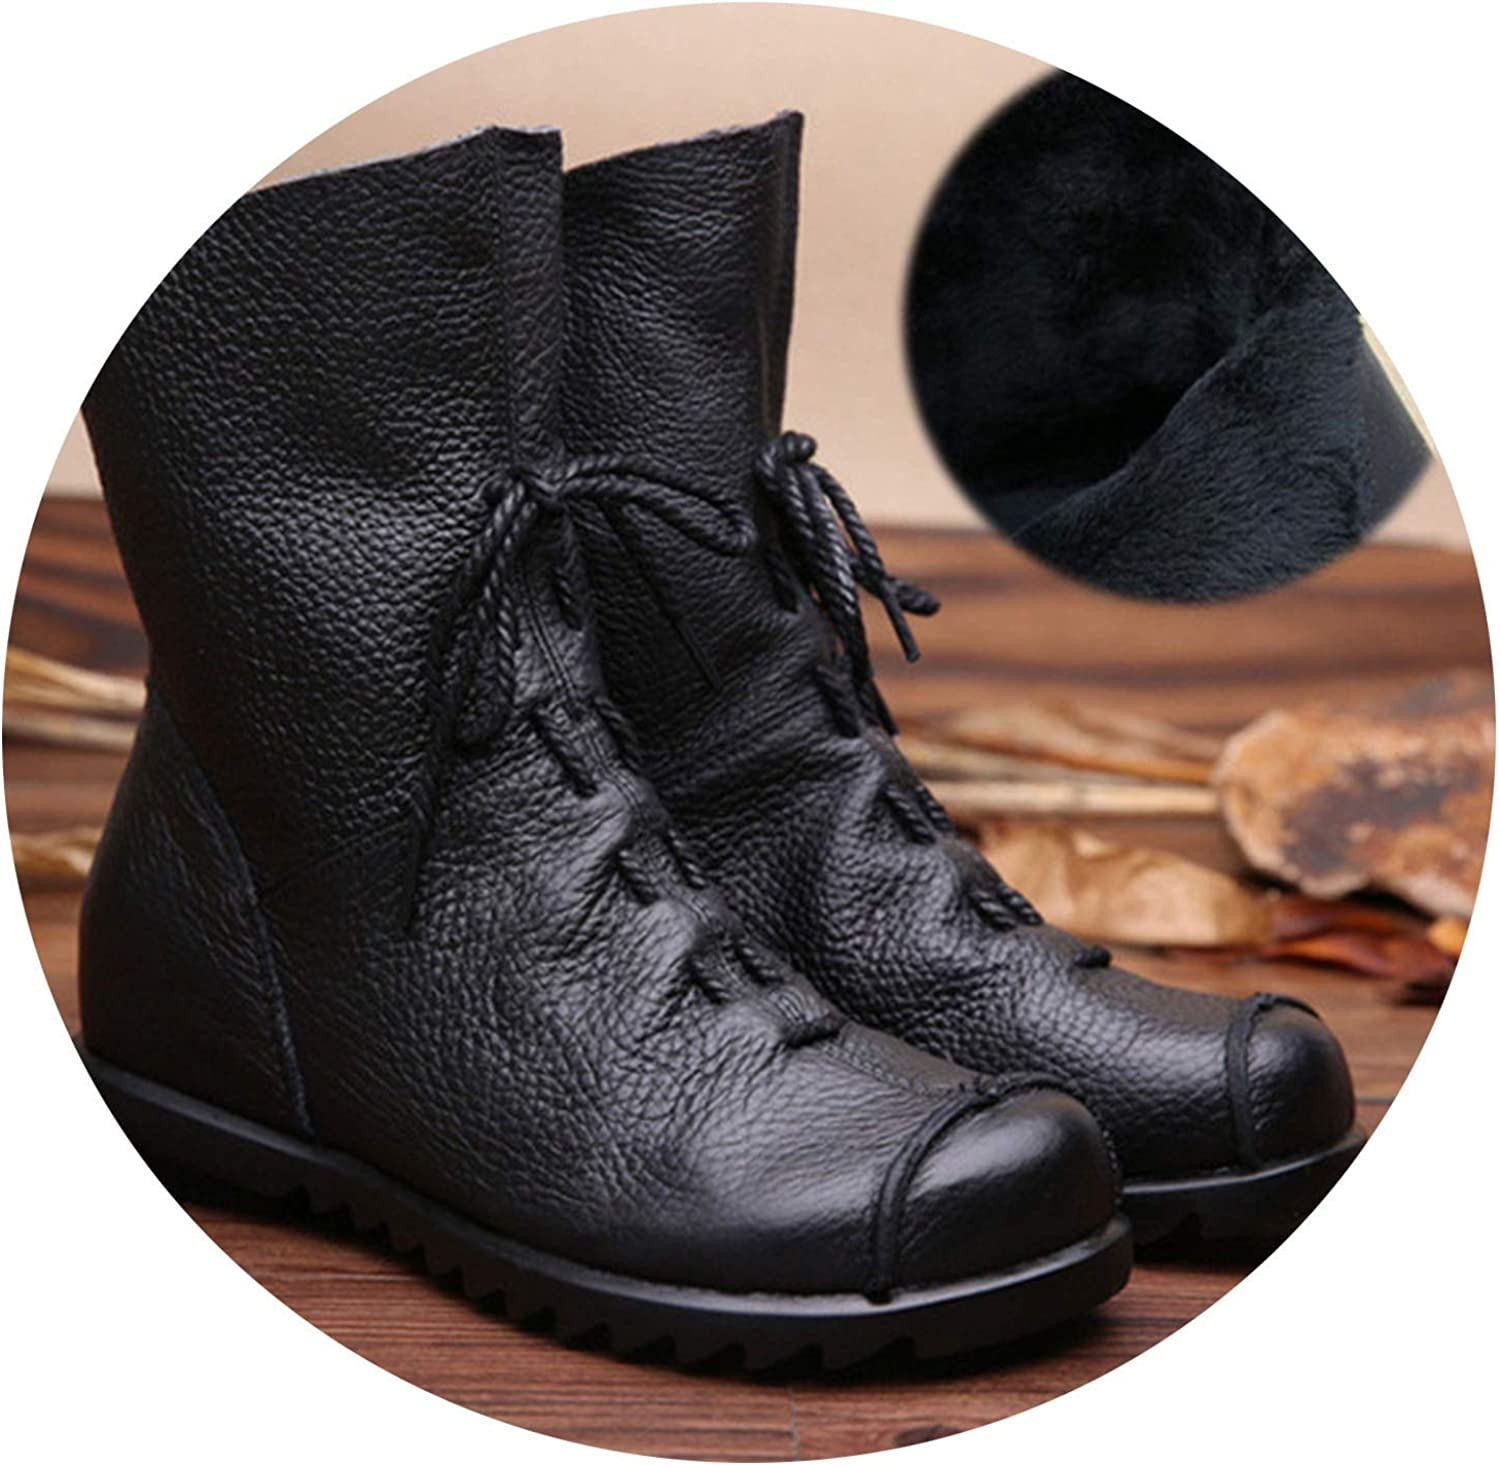 Sunmiles Genuine Leather Women Boots Flat Booties Soft Women's shoes Zip Ankle Boots Women shoes